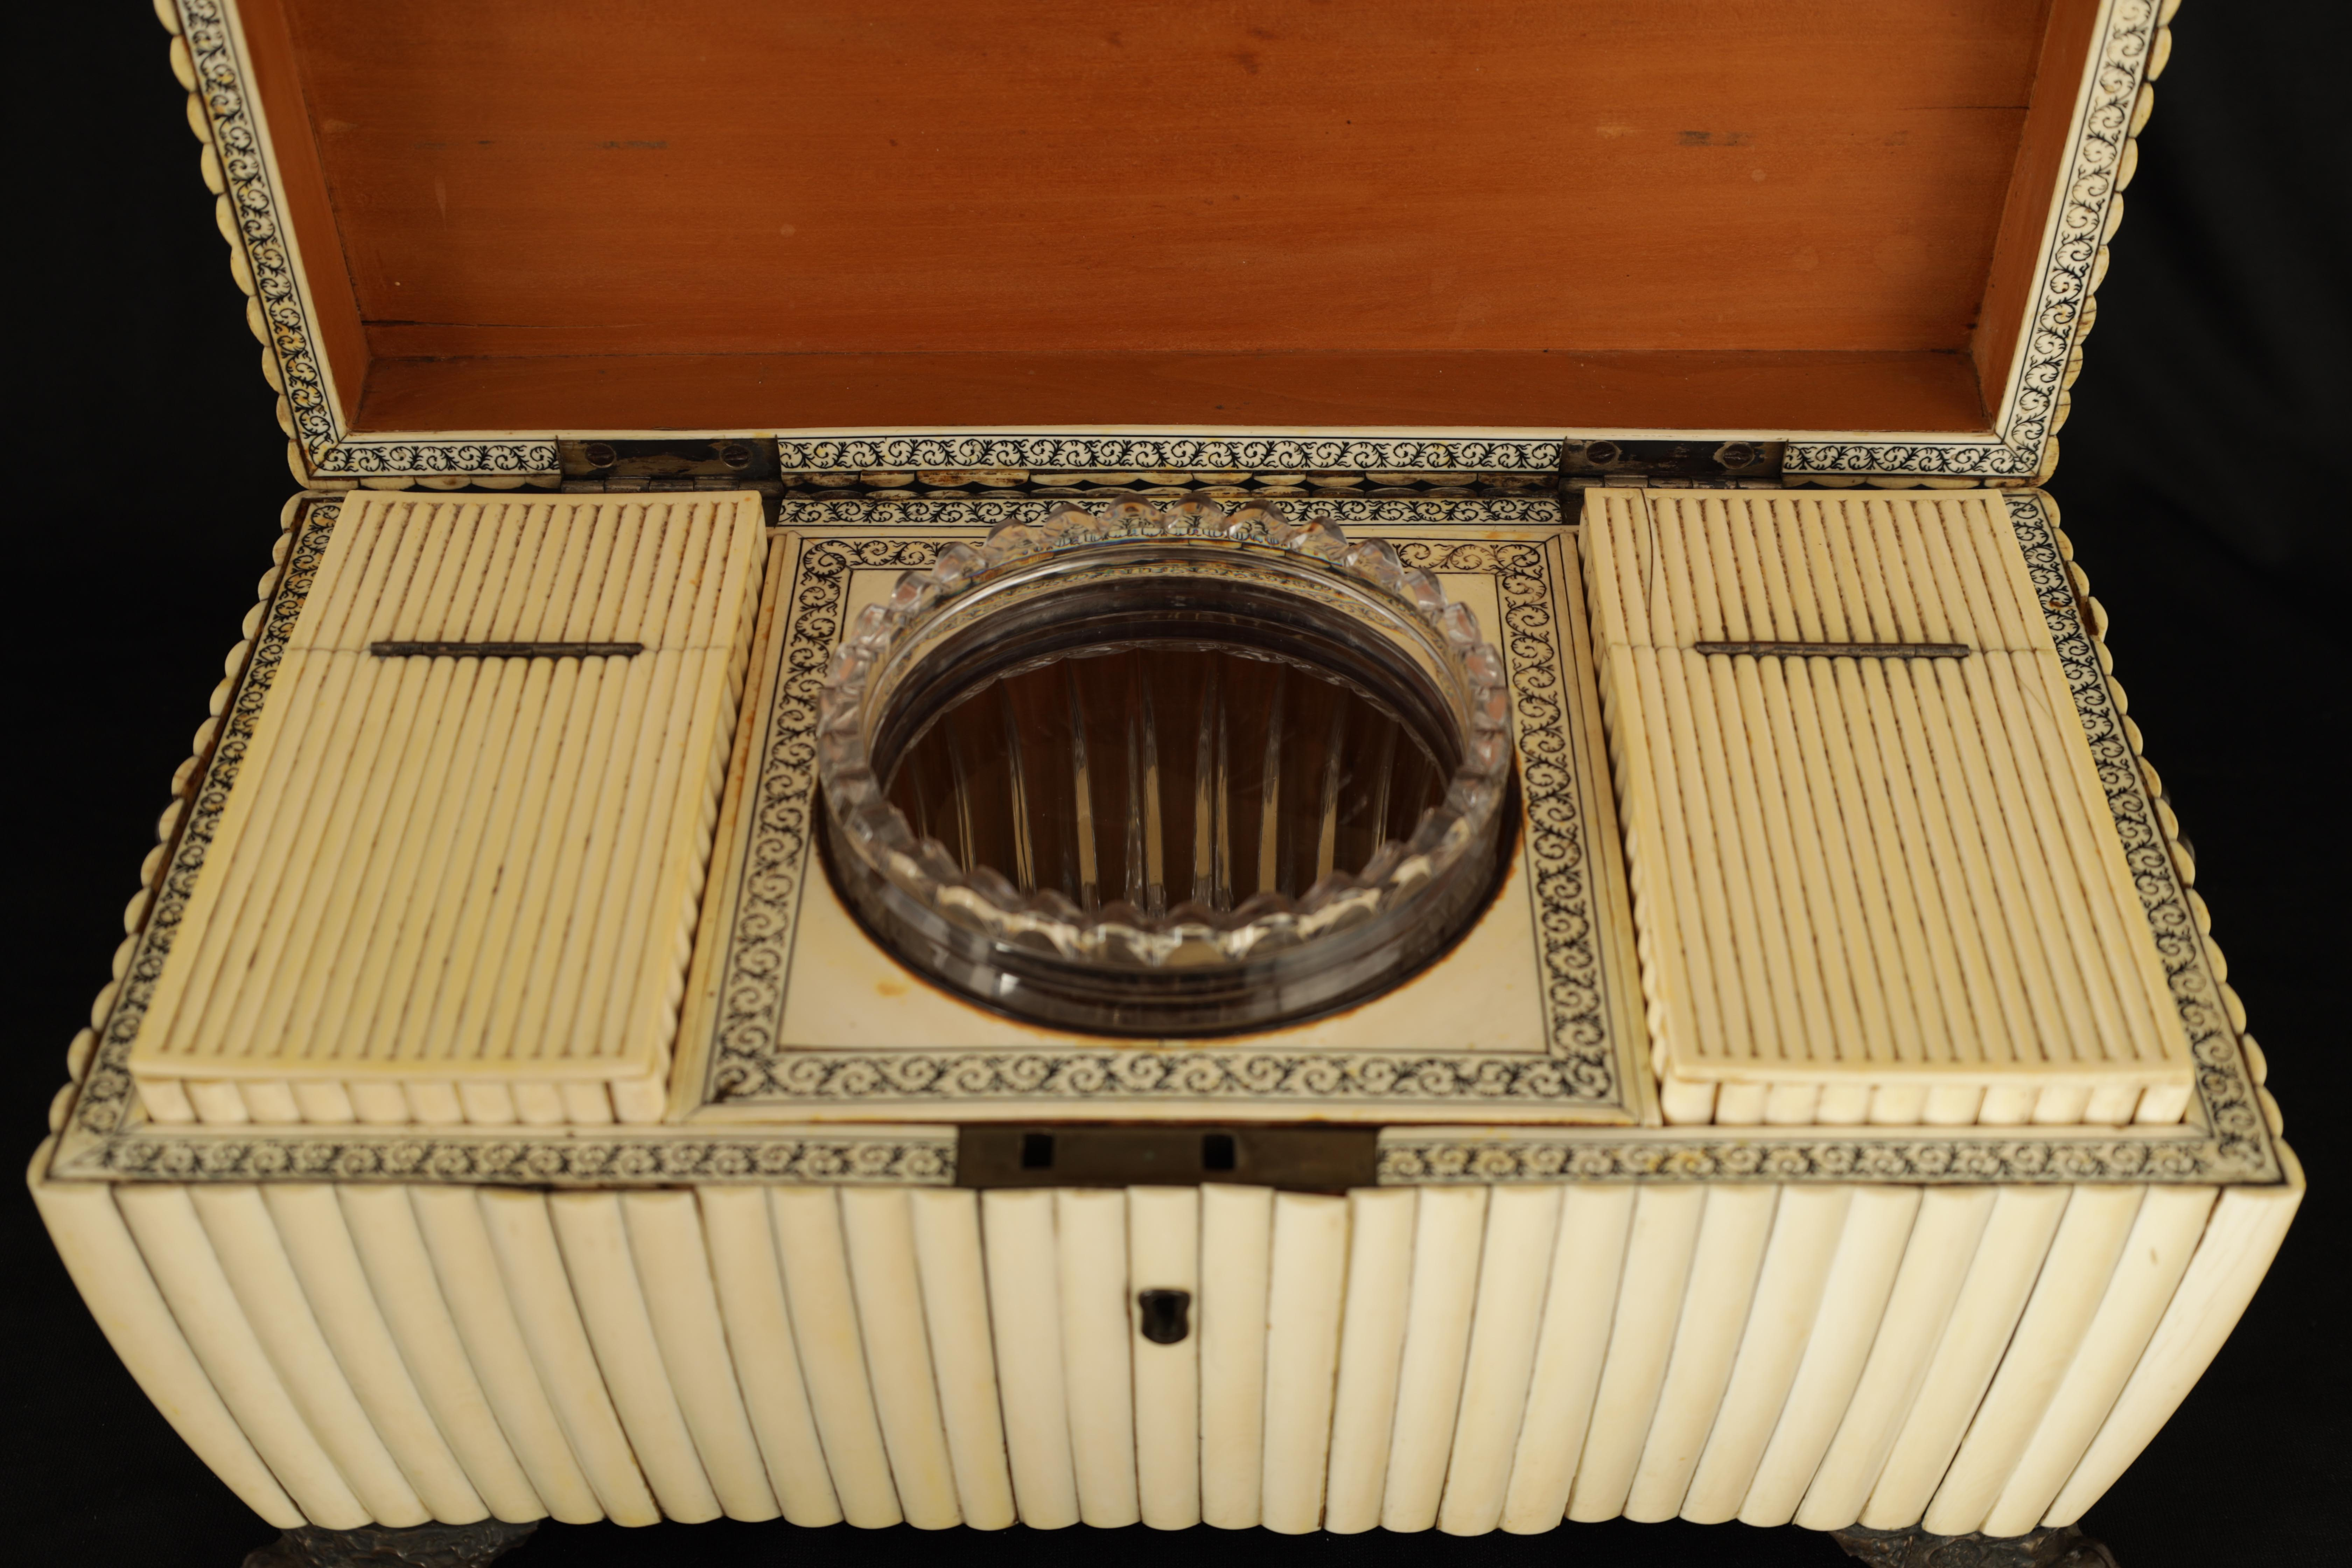 A REGENCY ANGLO-INDIAN IVORY AND SANDALWOOD VIZAGAPATAM TEA CADDY of sarcophagus form with gadroon - Image 4 of 12